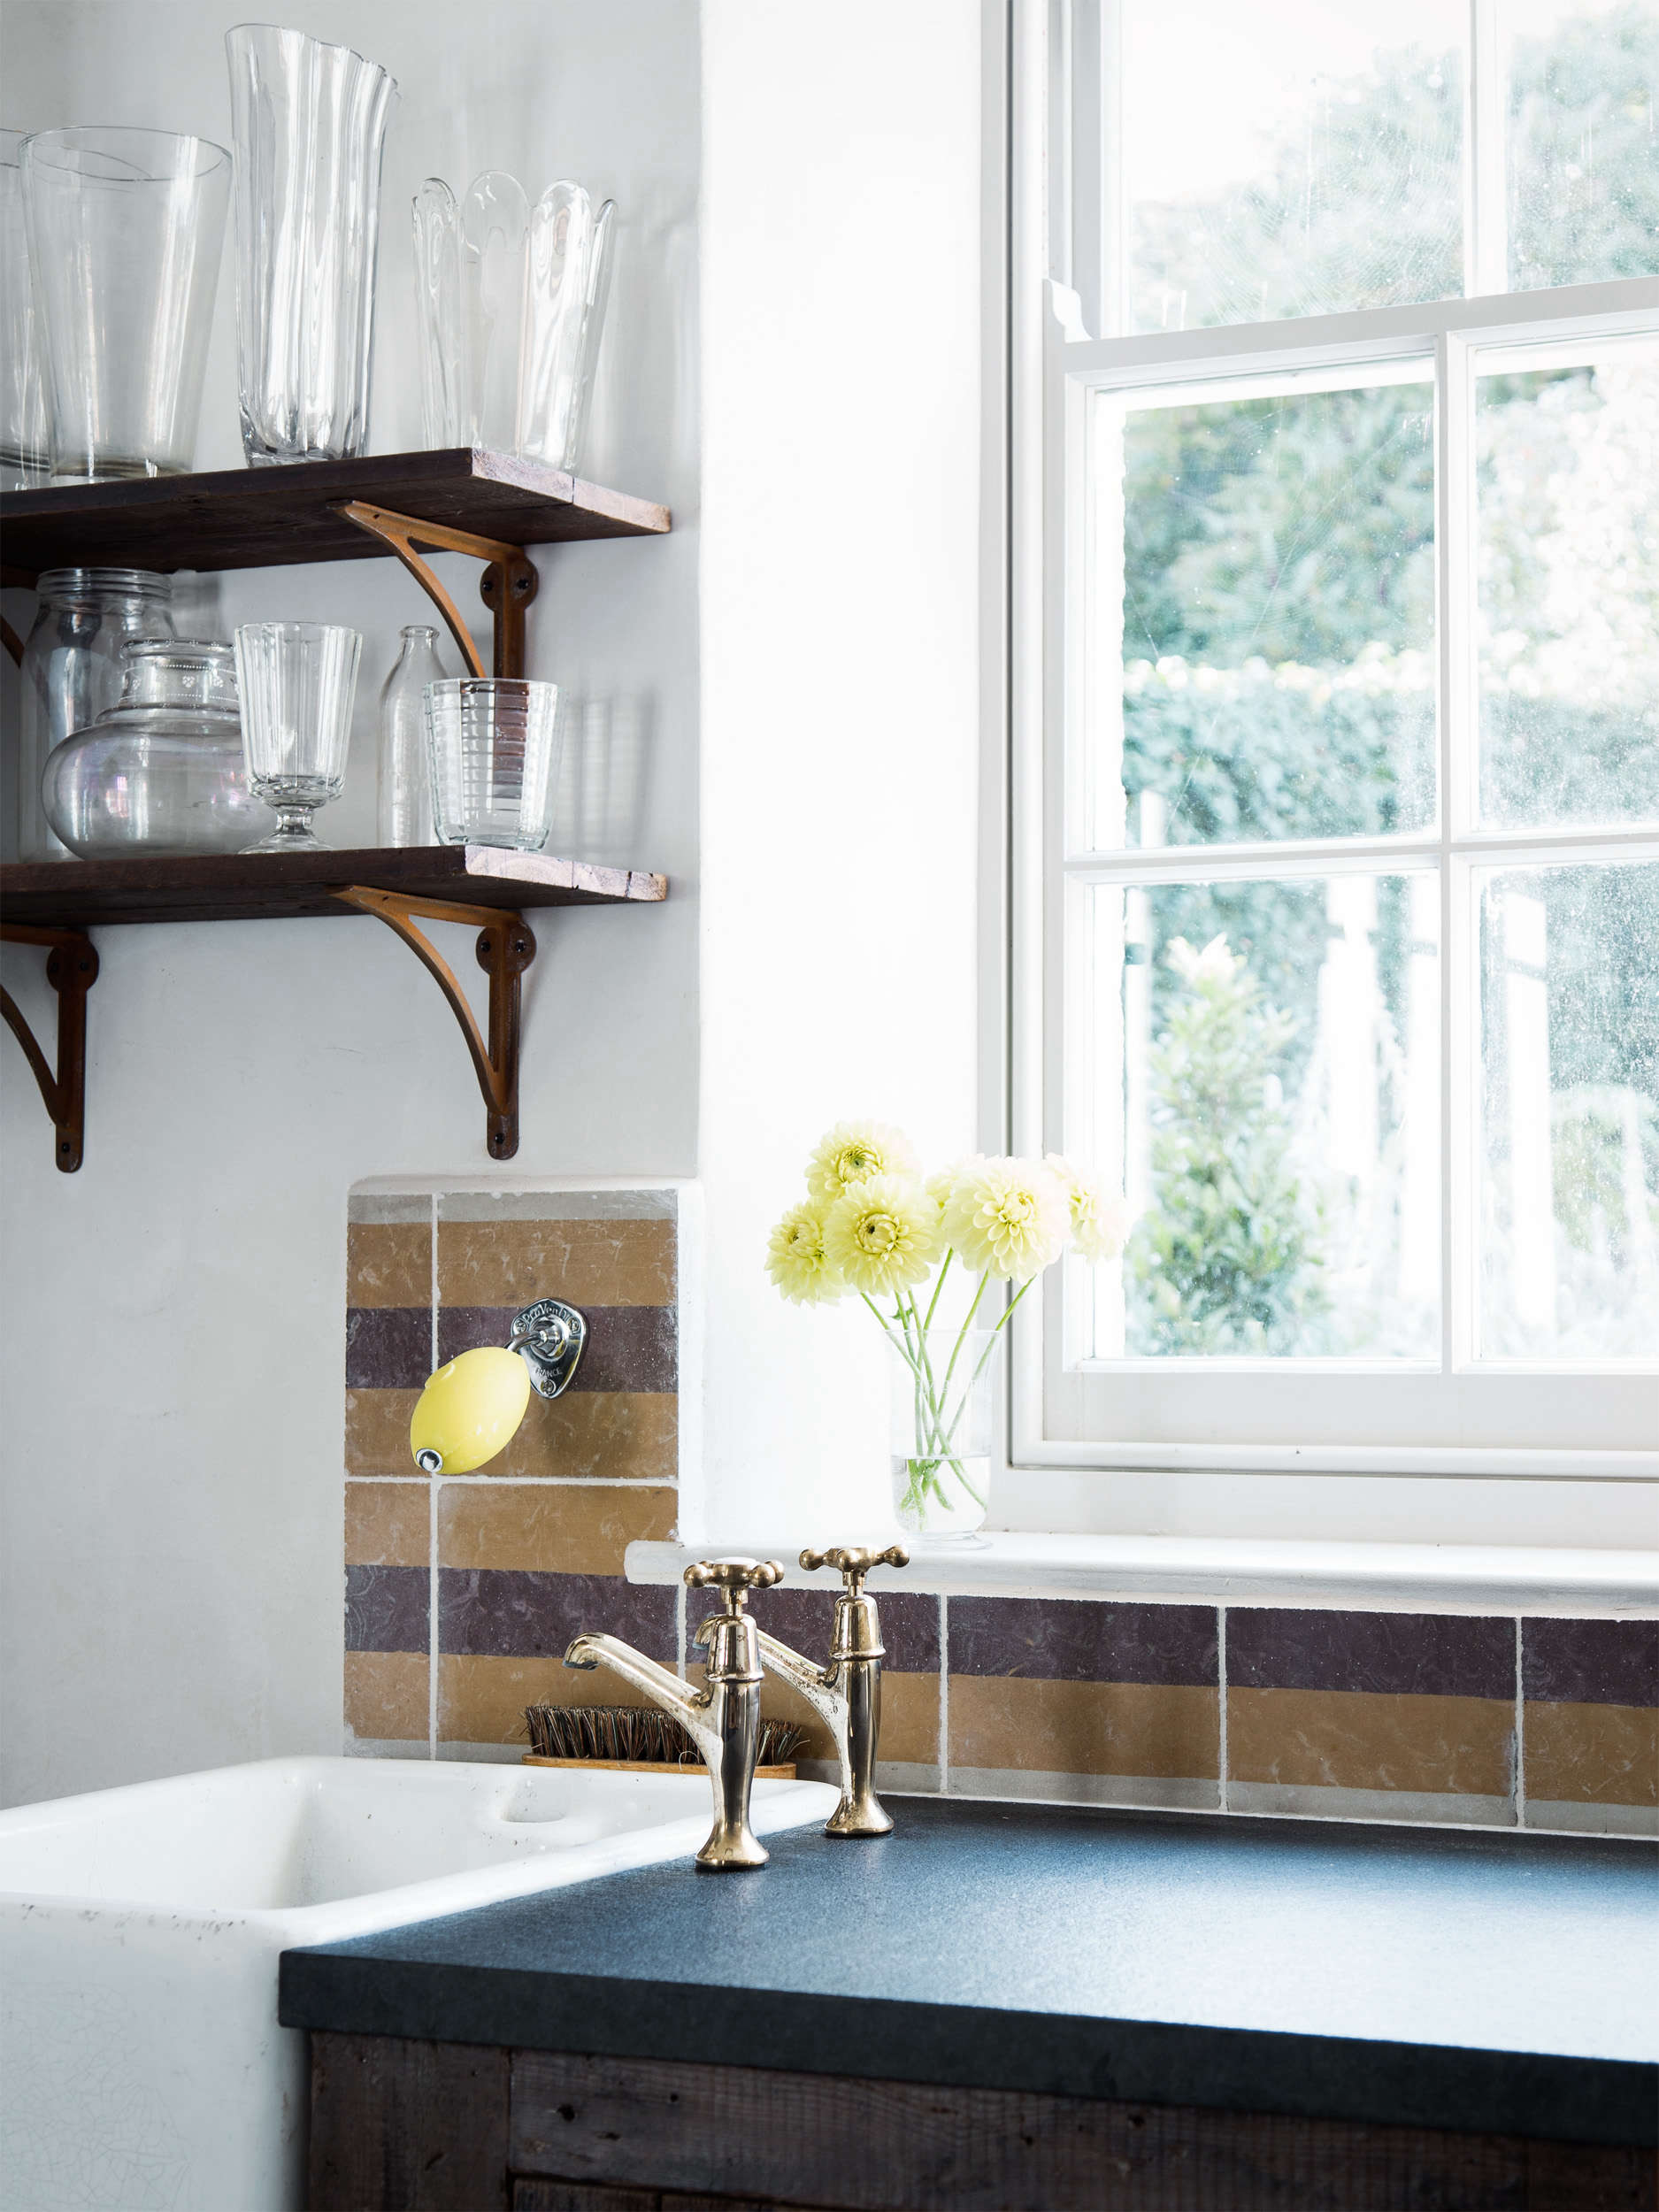 Utility Room Sink in Blue Dorset House by Mark Lewis, Photo by Rory Gardiner